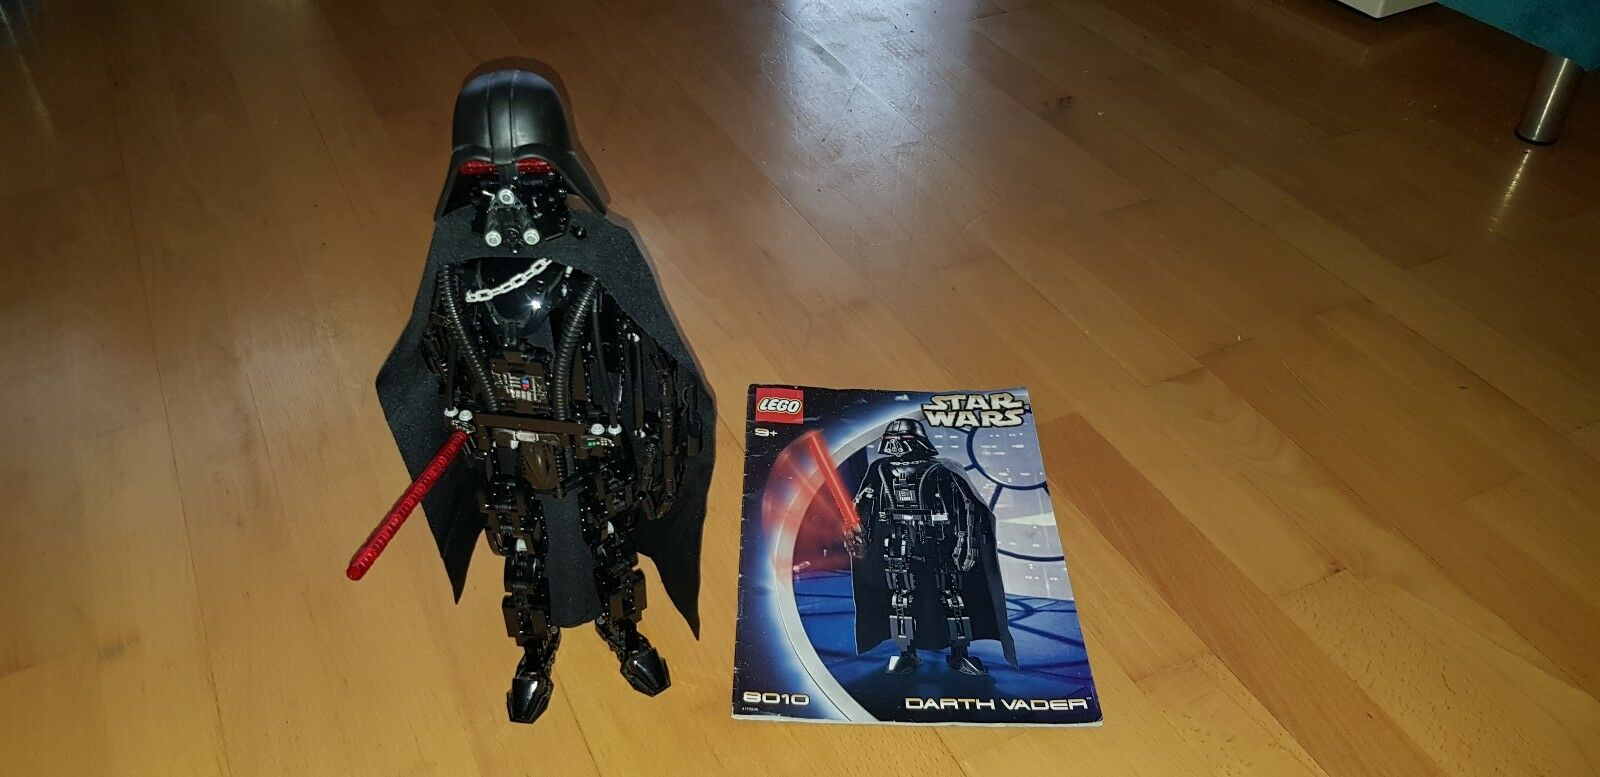 Lego Technic 8010 - Star Wars Darth Vader